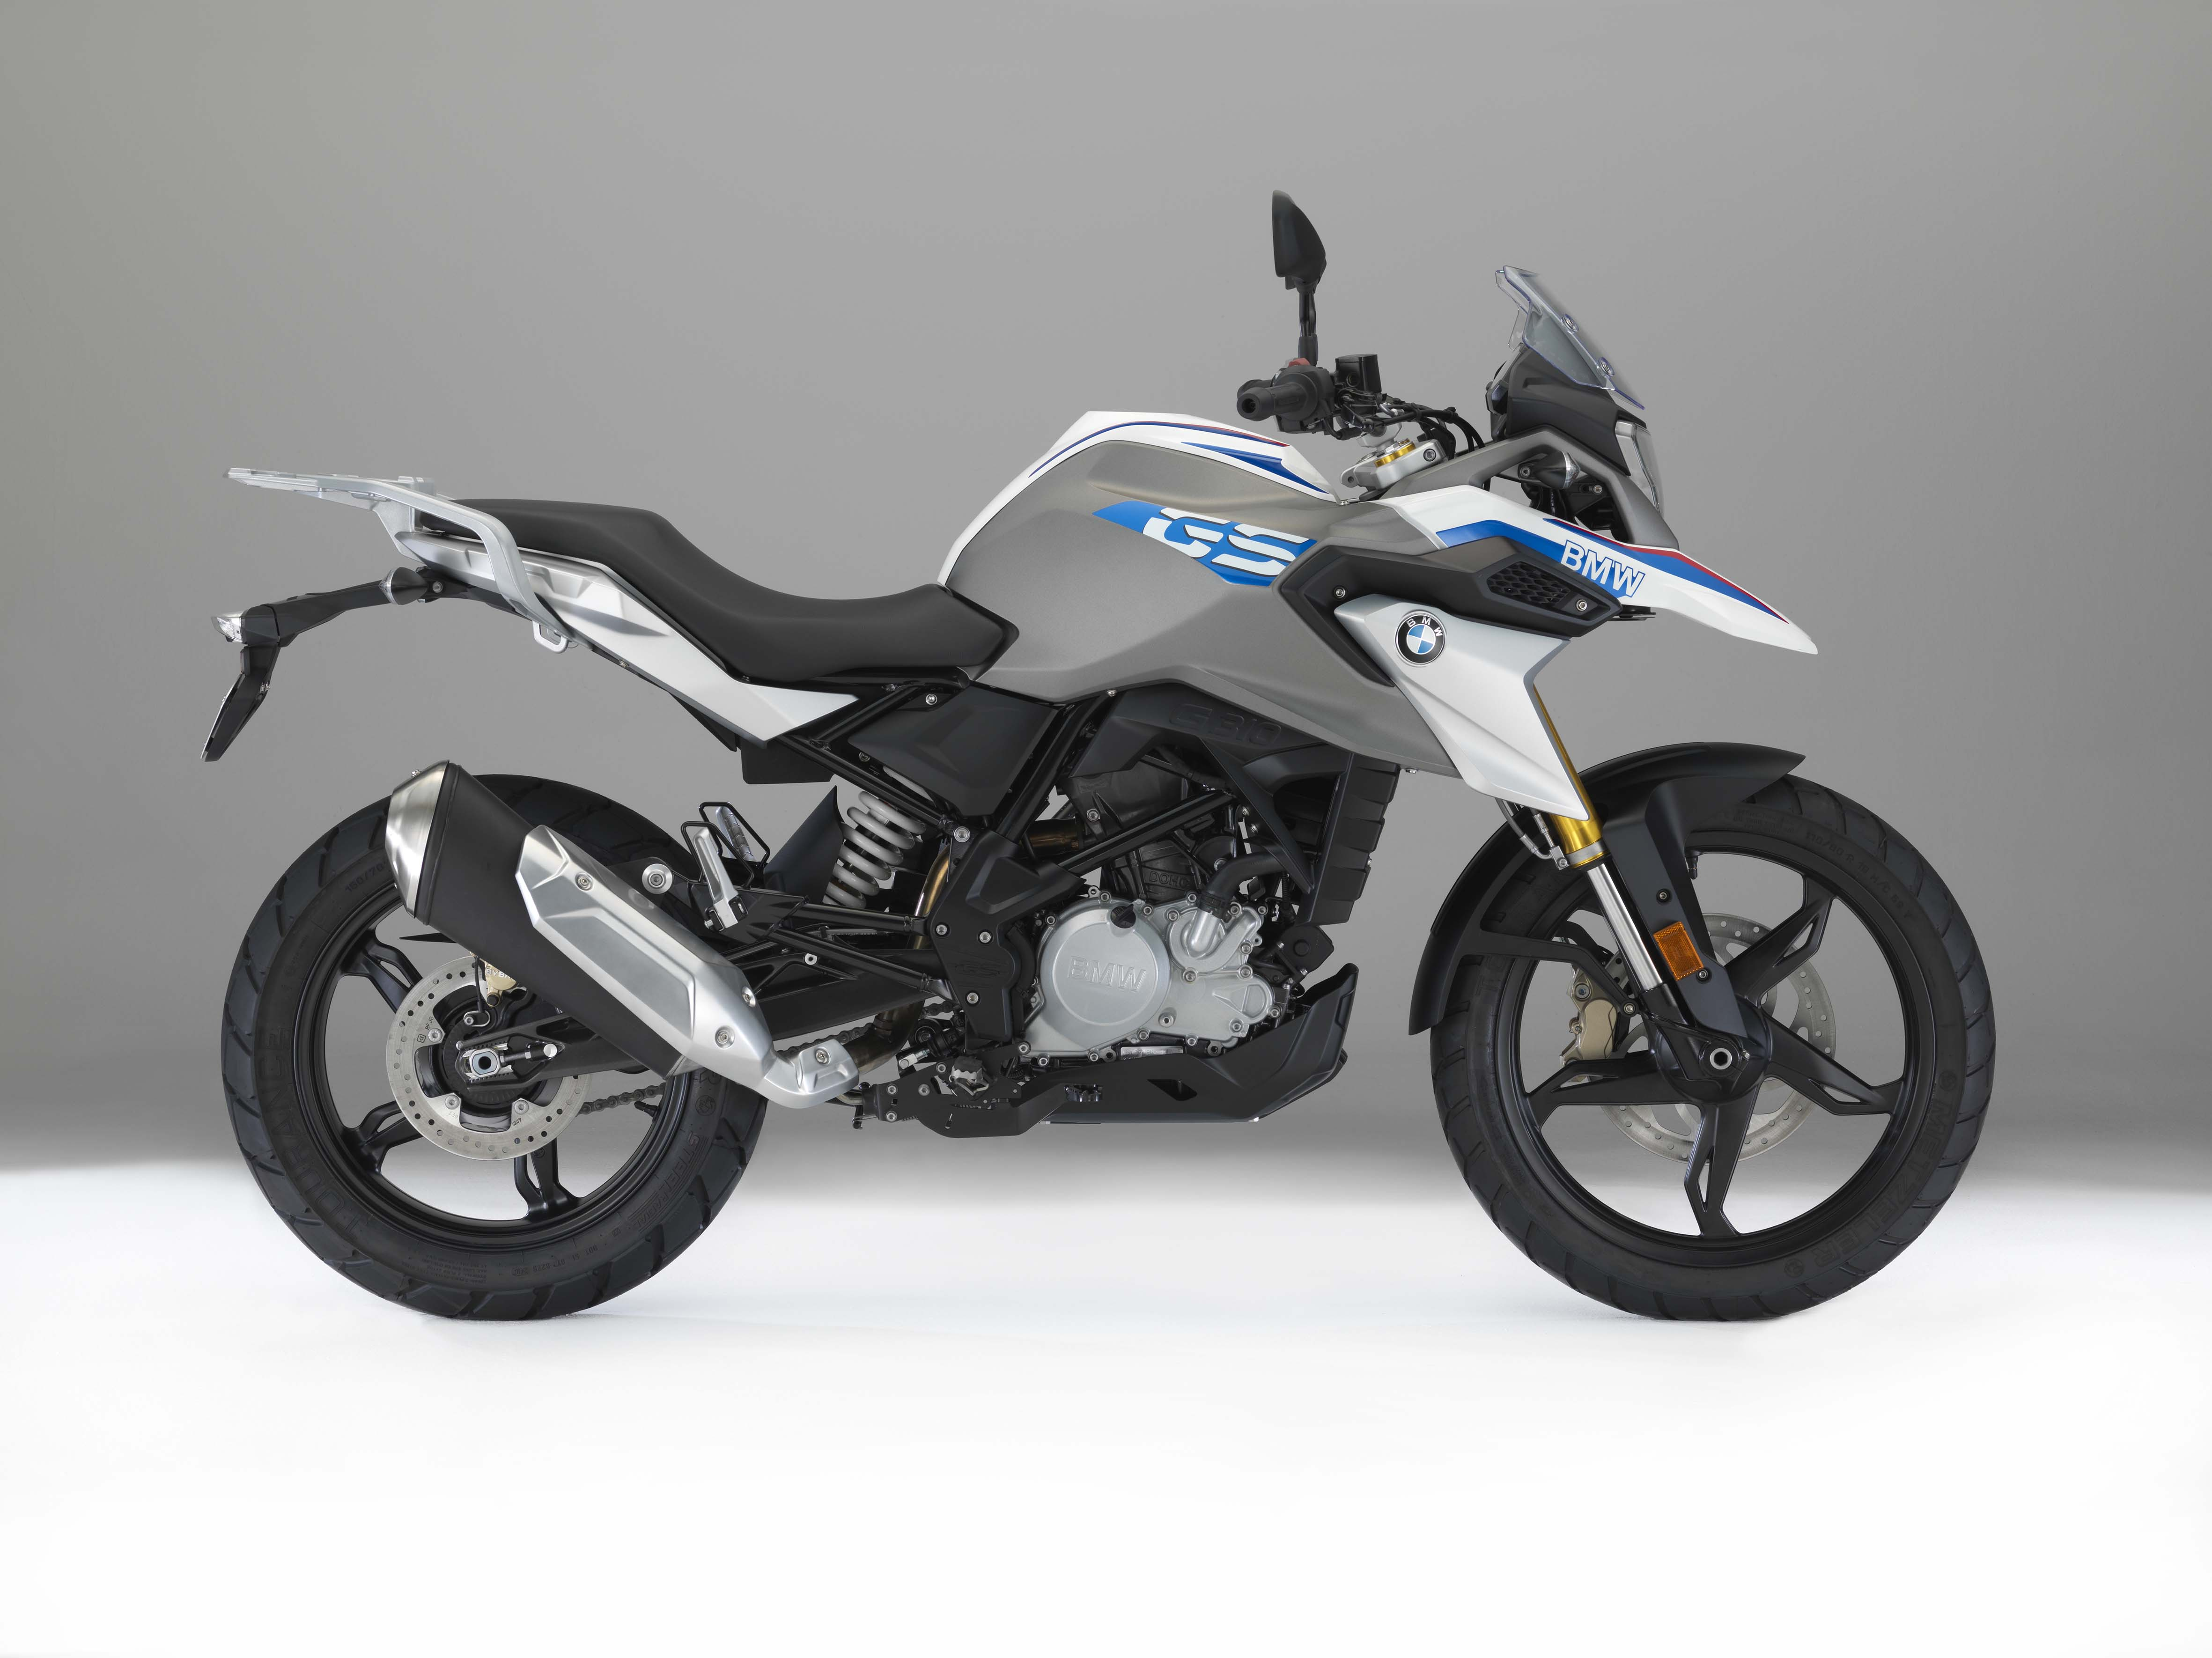 2017 BMW G310GS Debuts with 300cc of ADV